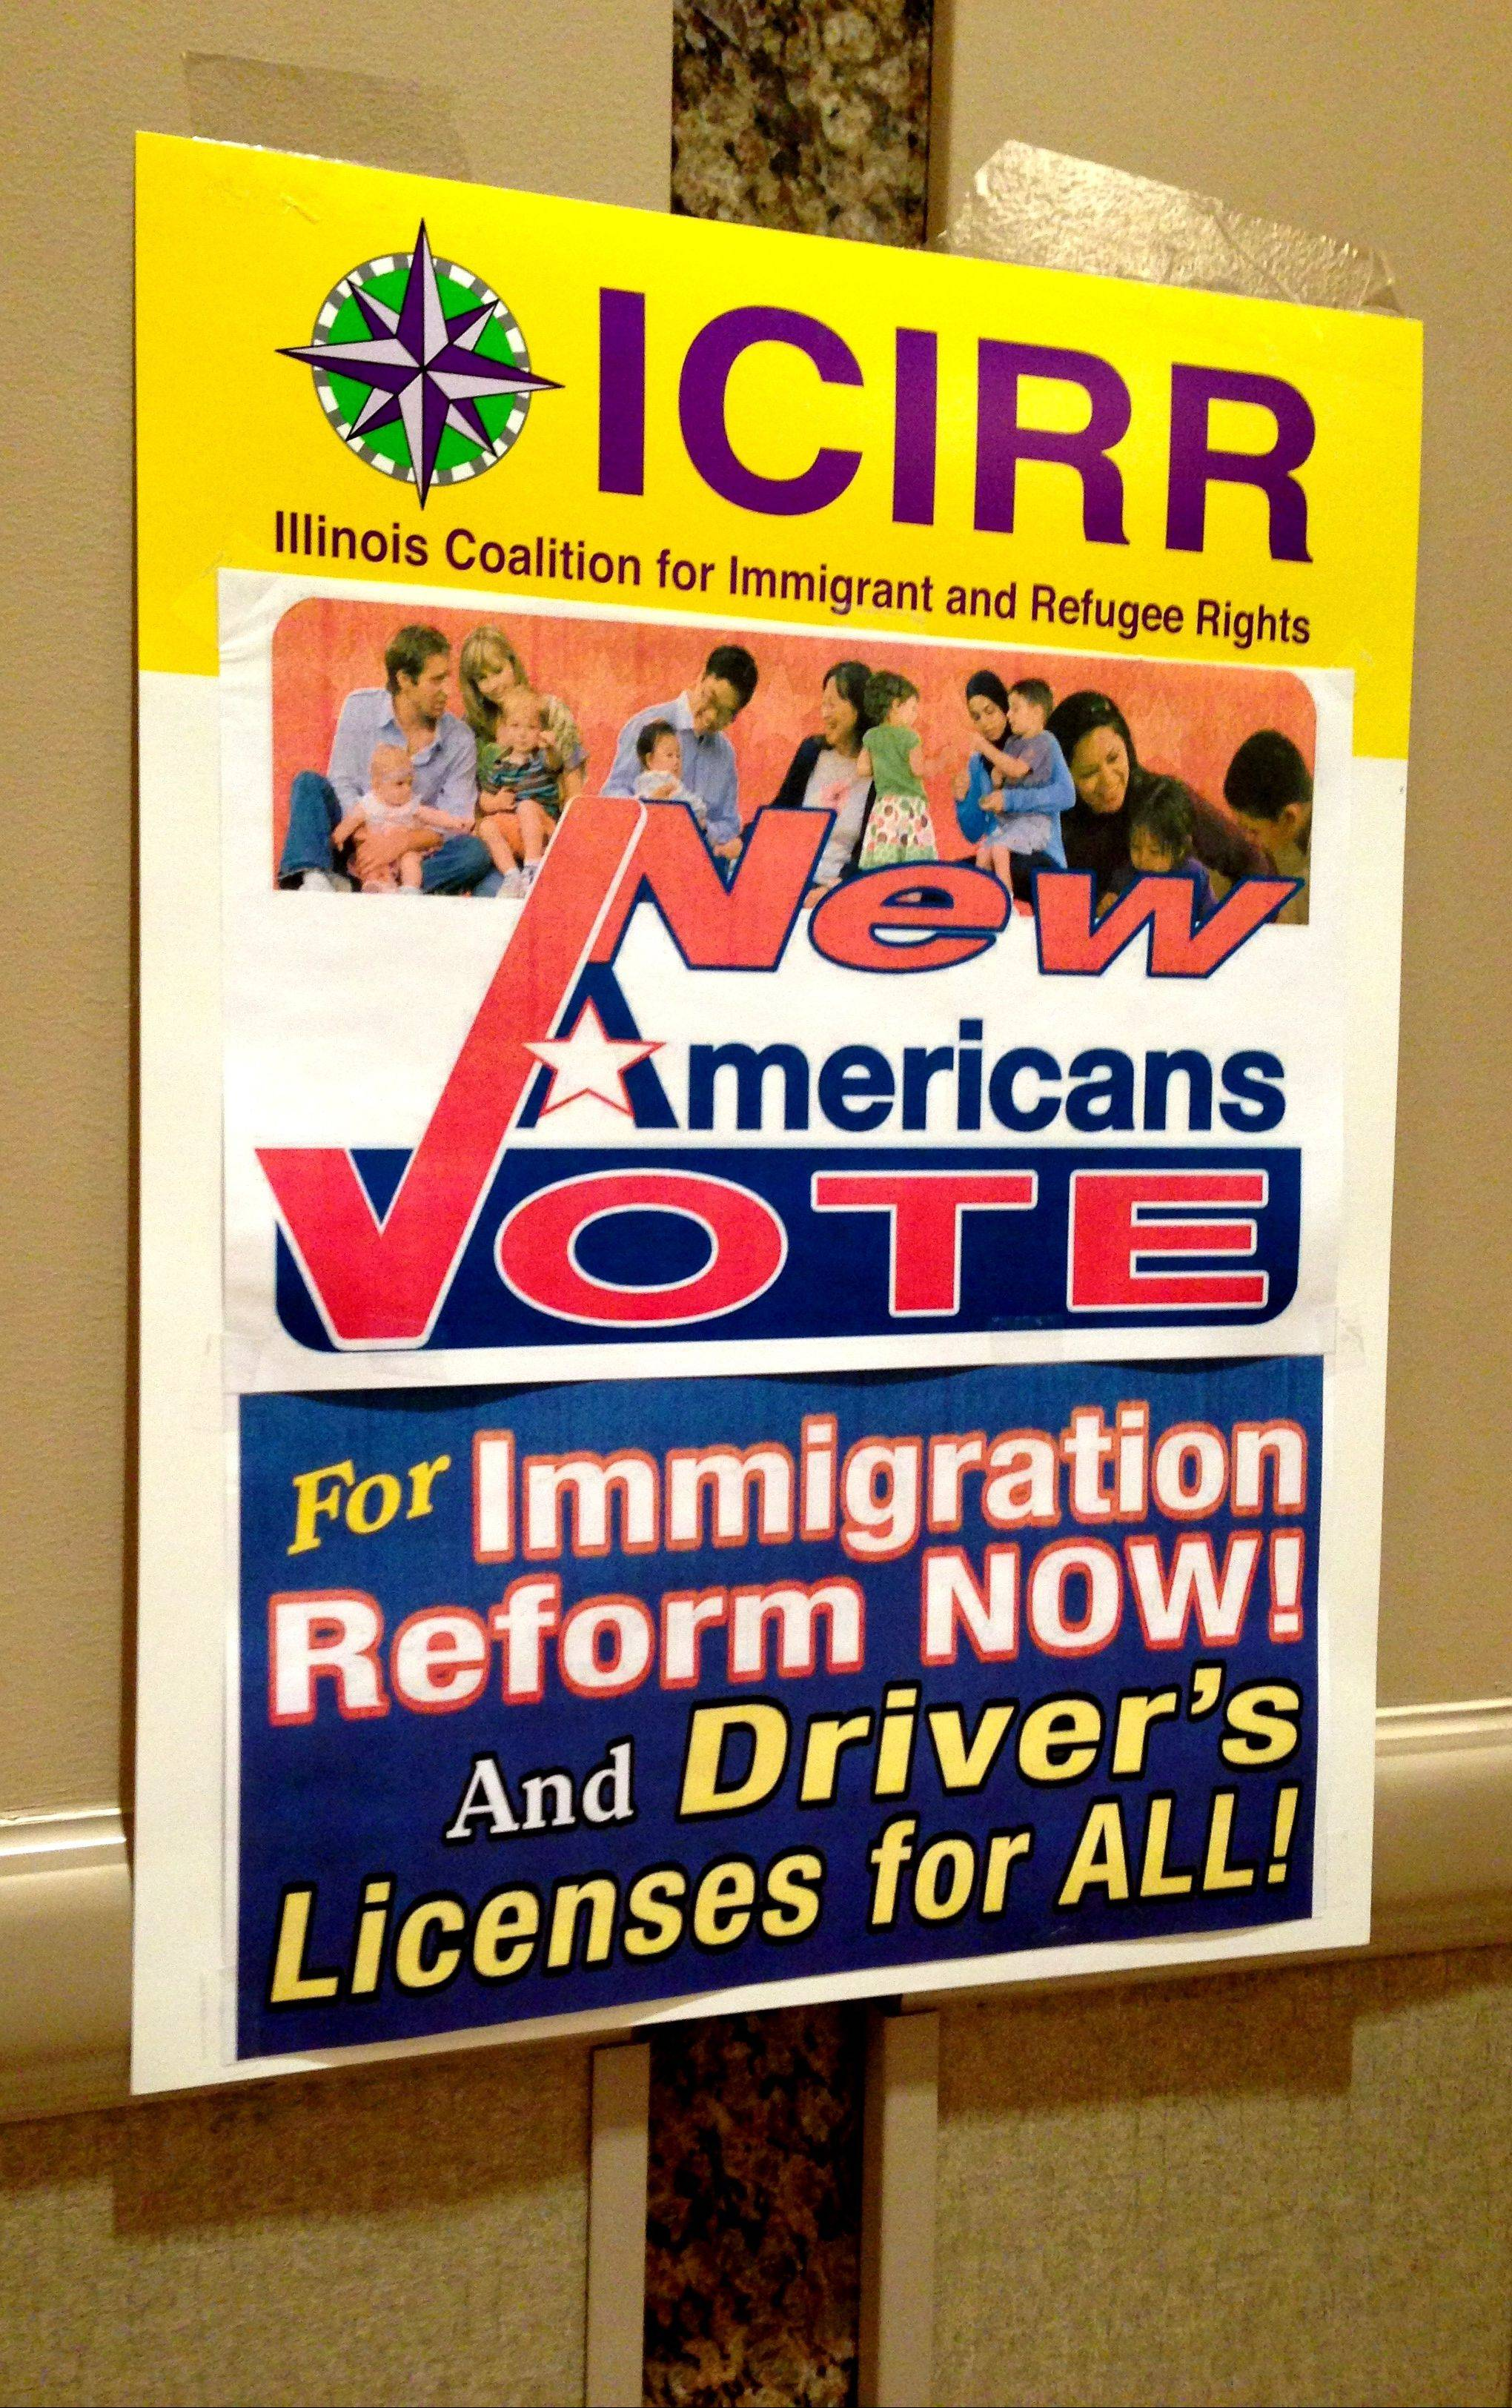 The audience, which favored the Dream ACT, pressed 11th Congressional District candidates on immigration reform Monday night in Joliet.